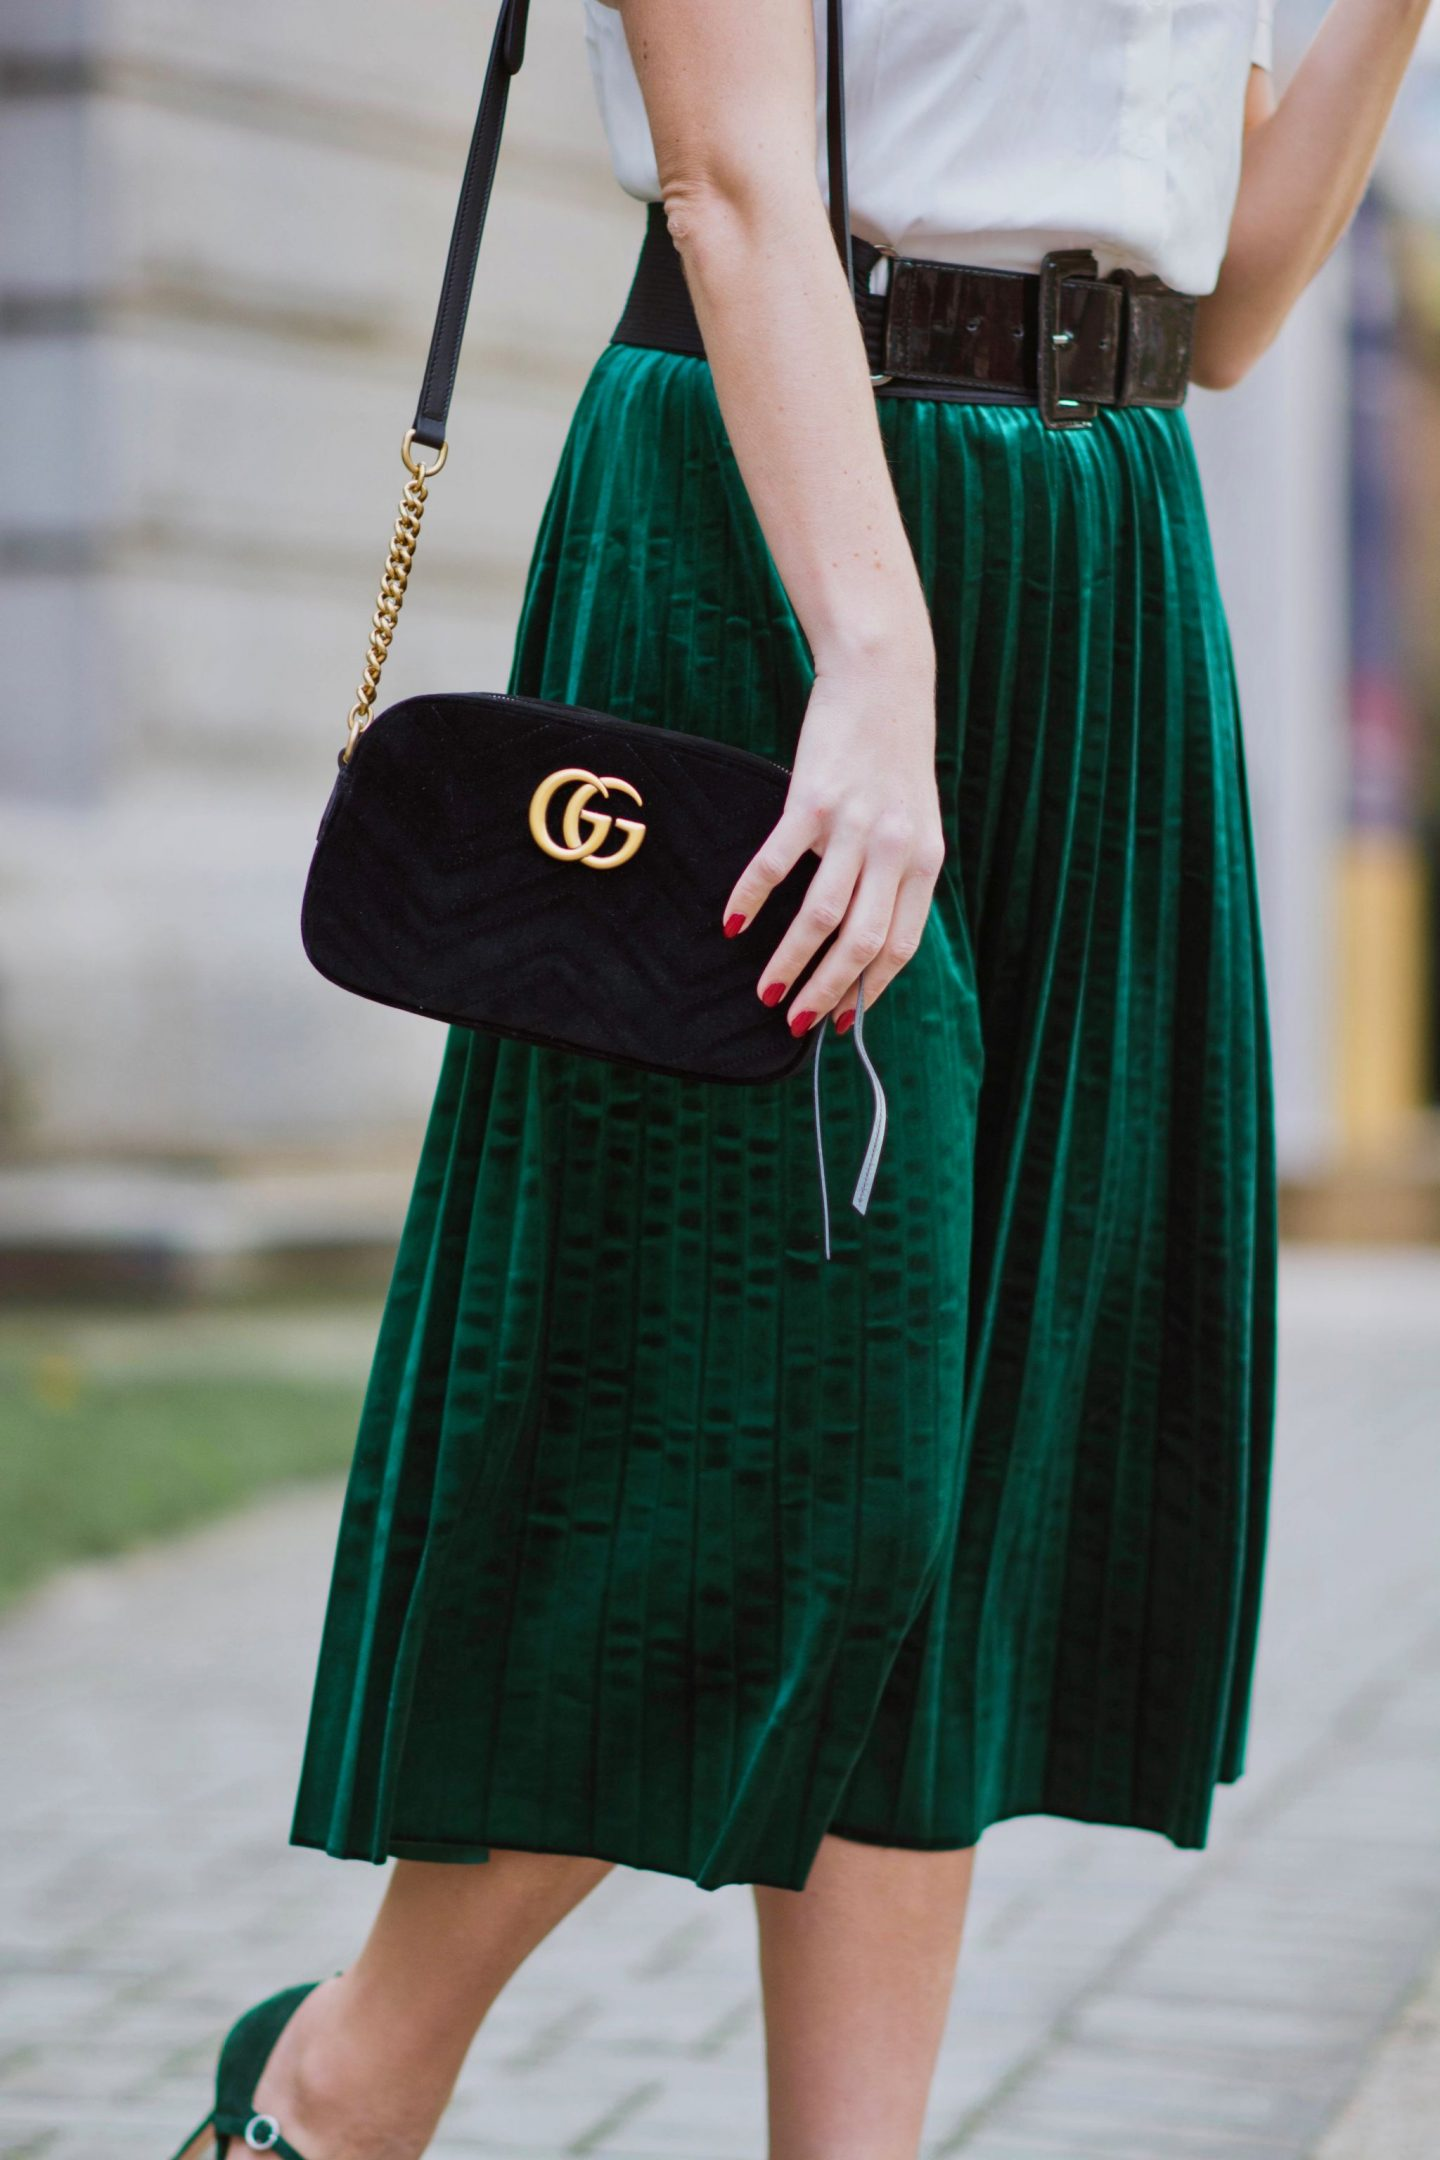 green velvet midi skirt and gucci handbag